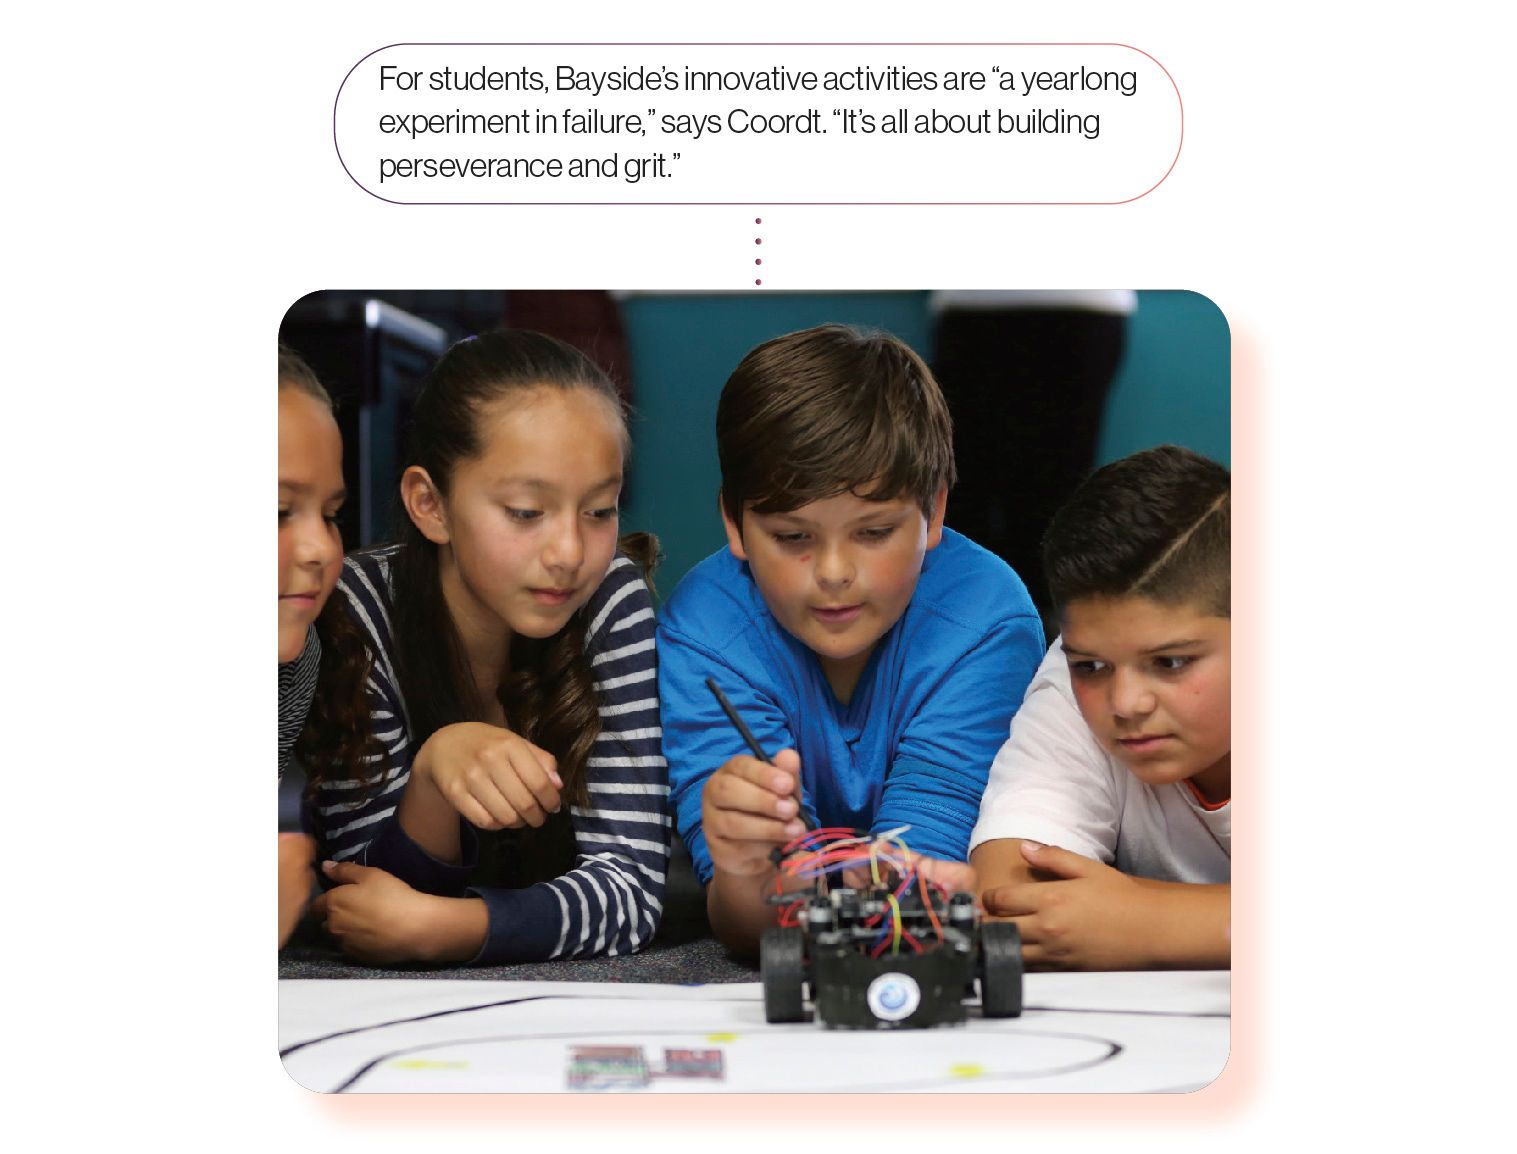 Image: Students learning about robots, with the caption 'For students, Bayside's innovative activities are 'a yearlong experiment in failure,' says Coordt. 'It's all about building perseverance and grit.''